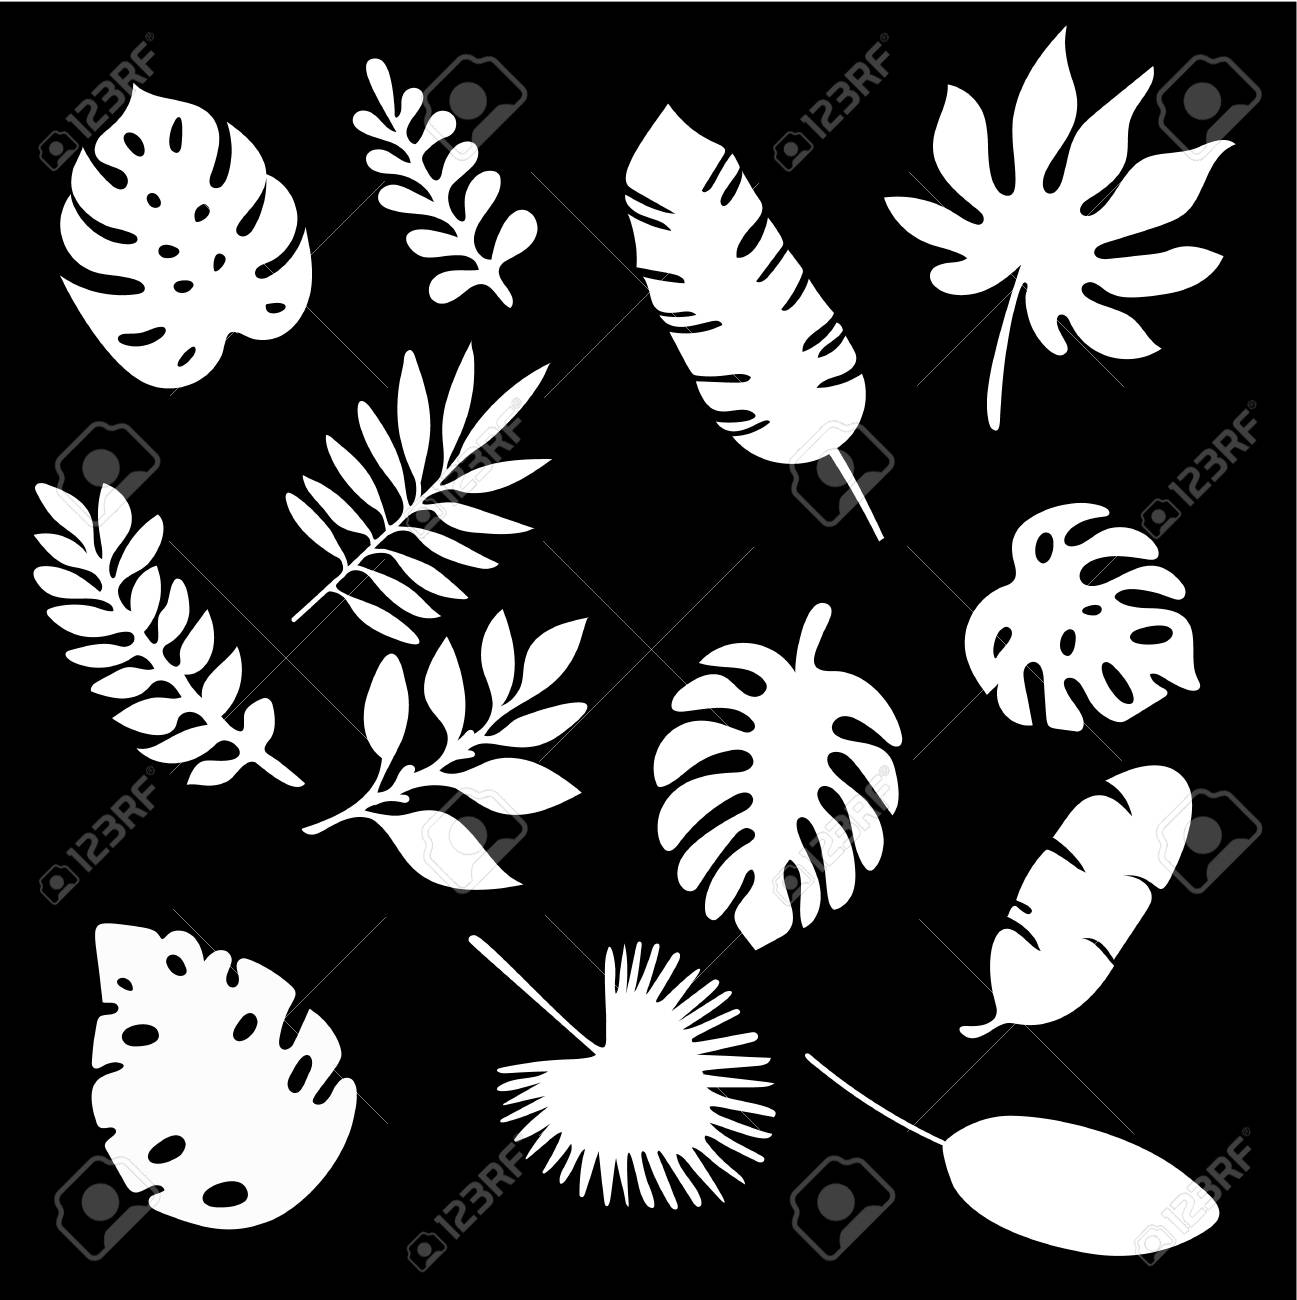 Palm Leaves Silhouettes Set Isolated On Black Background Tropical Royalty Free Cliparts Vectors And Stock Illustration Image 97750649 Beautiful seamless vector floral pattern background with tropical palm leaves, jungle leaves. palm leaves silhouettes set isolated on black background tropical